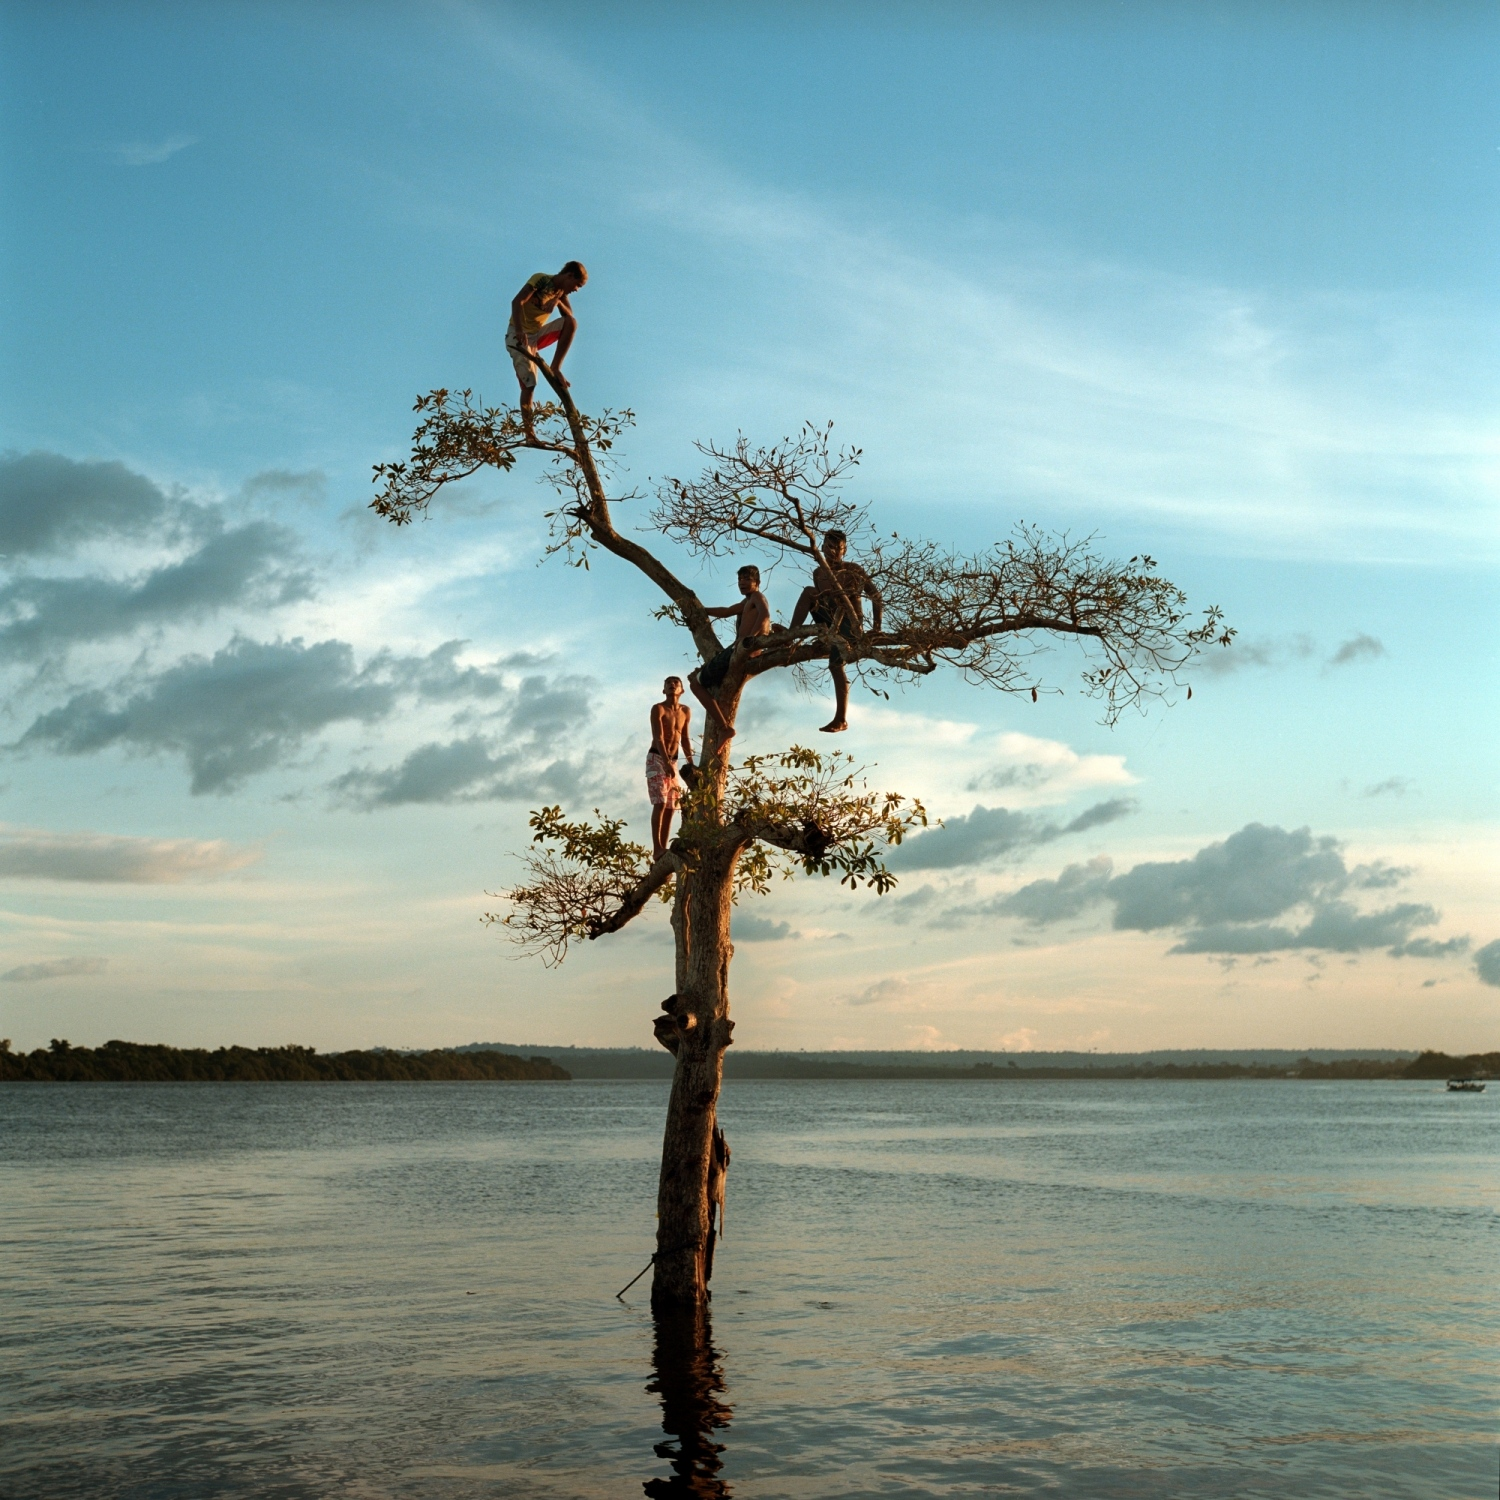 2014. A group of boys climb a tree on the Xingu River by the city of Altamira, Brazil. Today, one third of the city has been permanently flooded by the nearby Belo Monte Dam displacing over 20,000 people while impacting numerous indigenous and riverine communities in the region./Aaron Vincent Elkaim